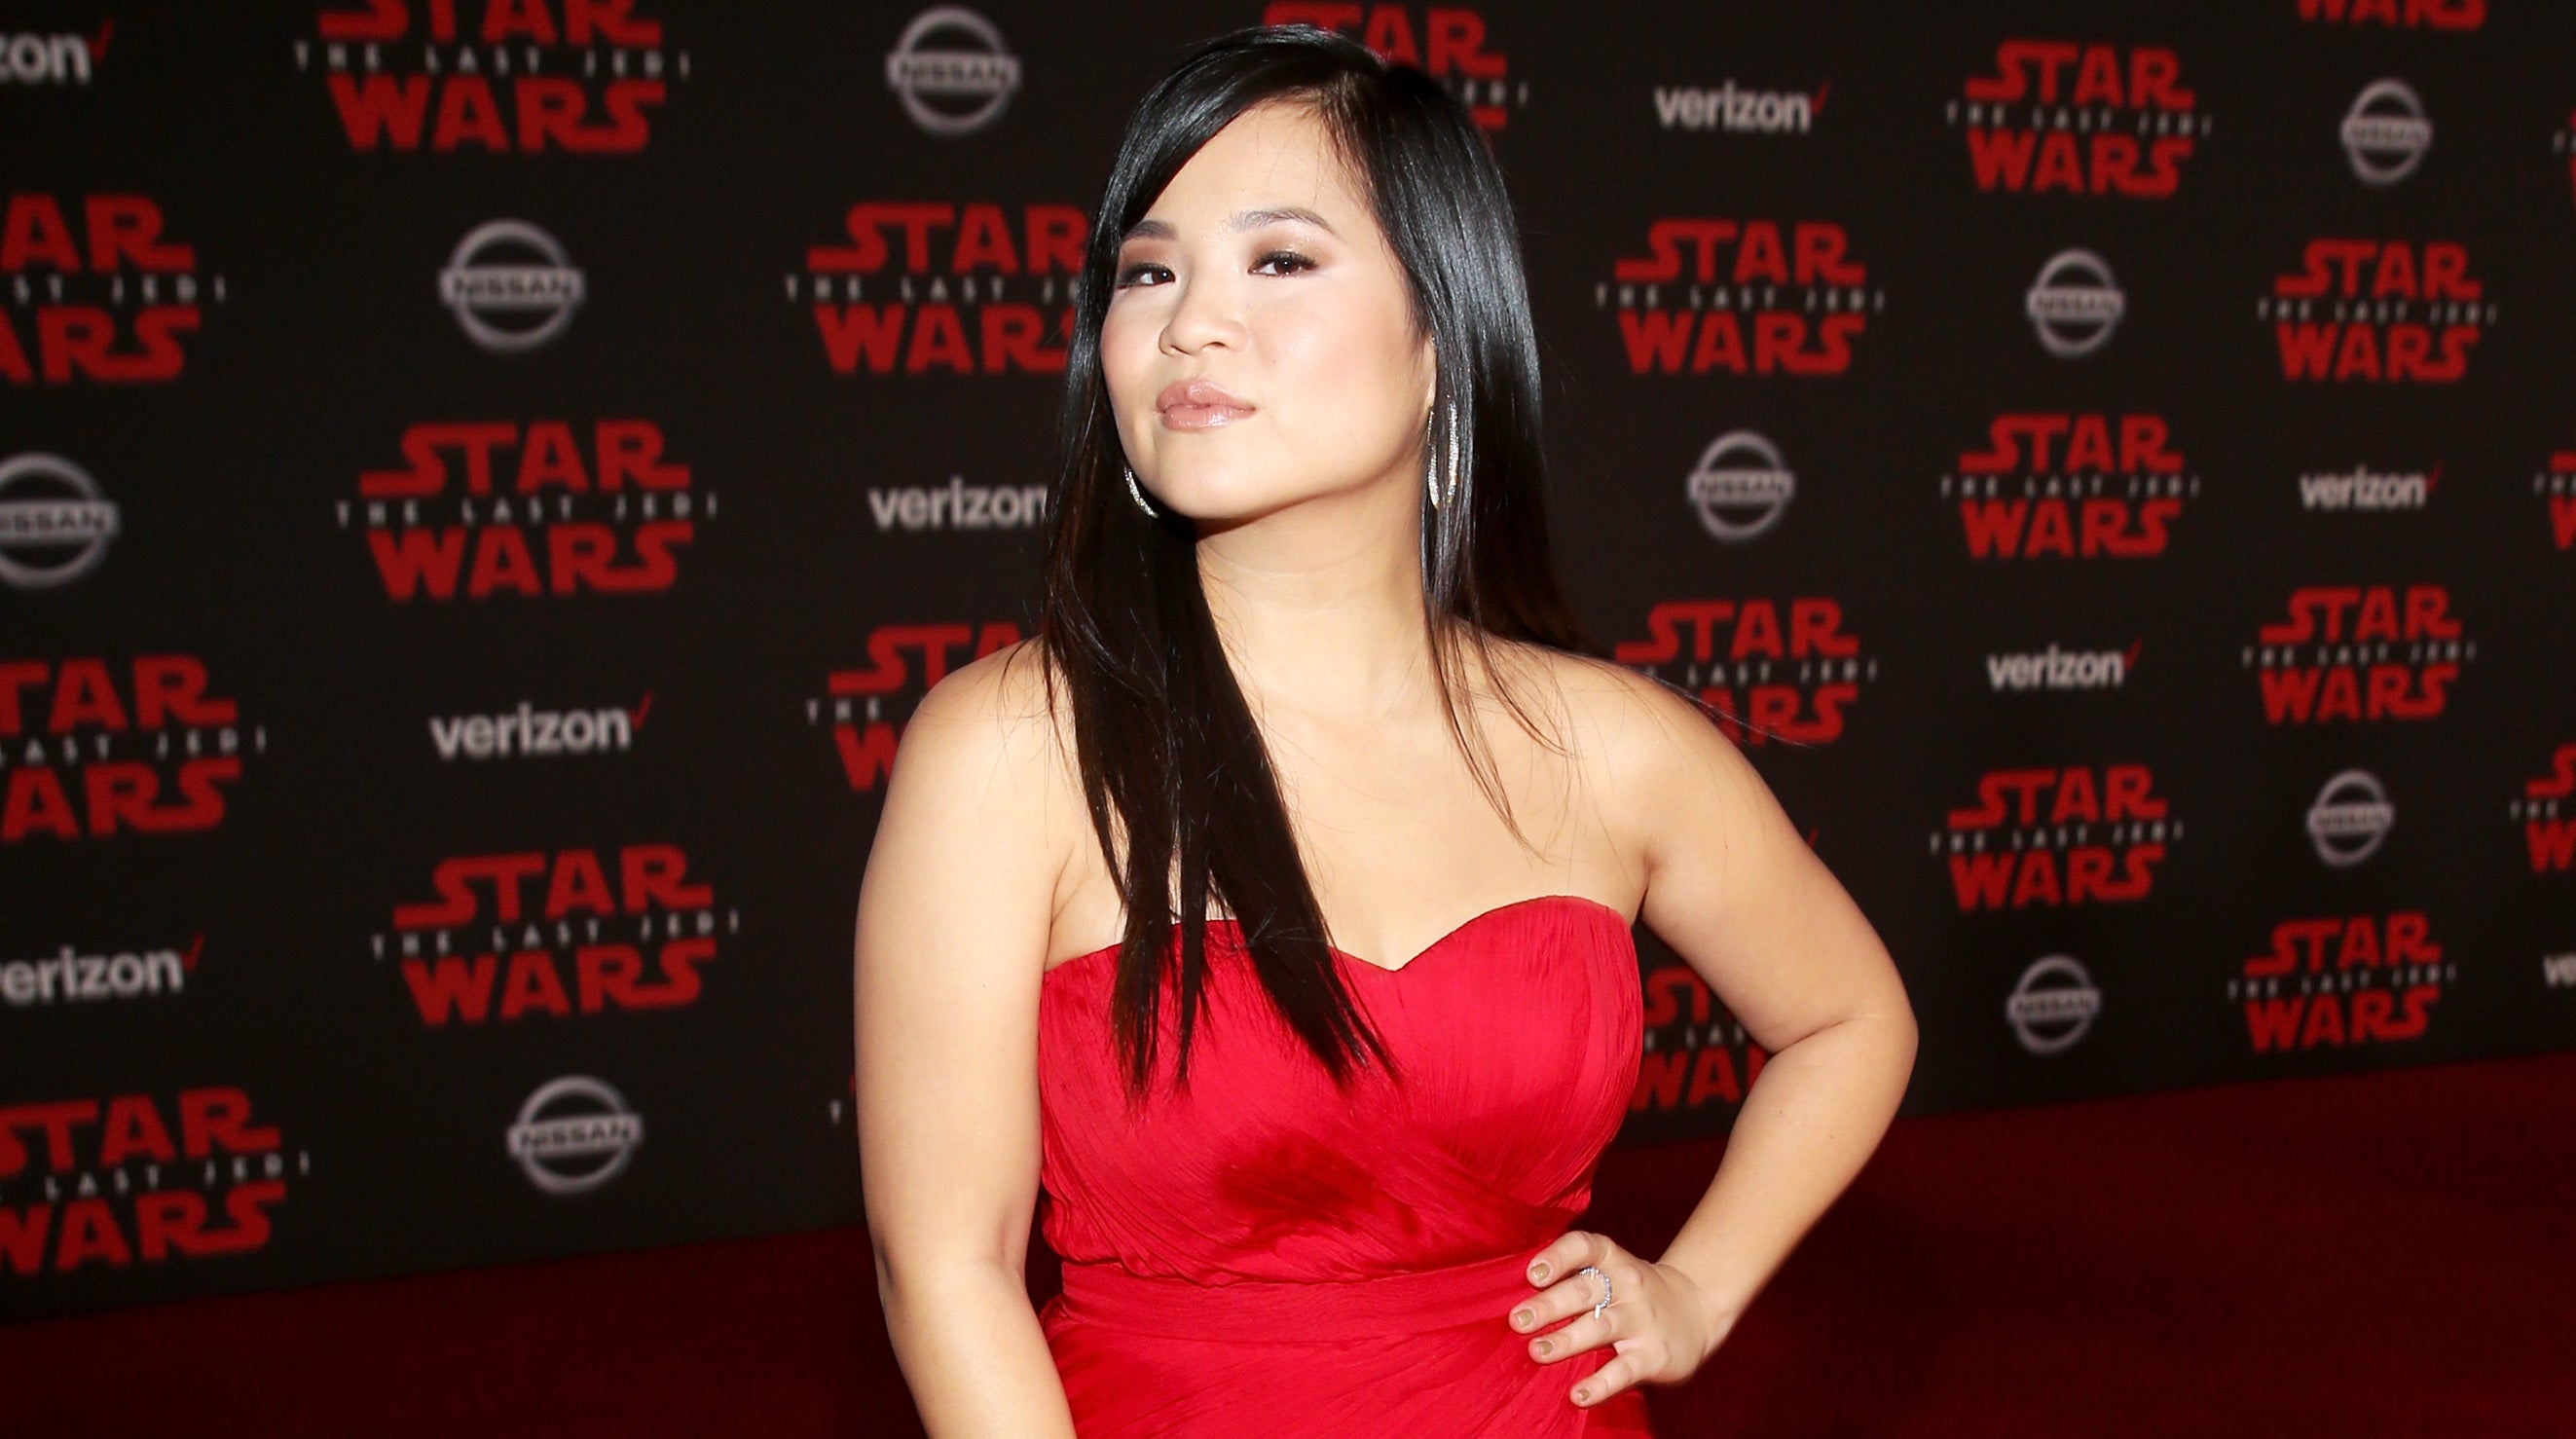 Kelly Marie Tran Speaks Out Against Racist Star Wars Fans With Some Powerful Words